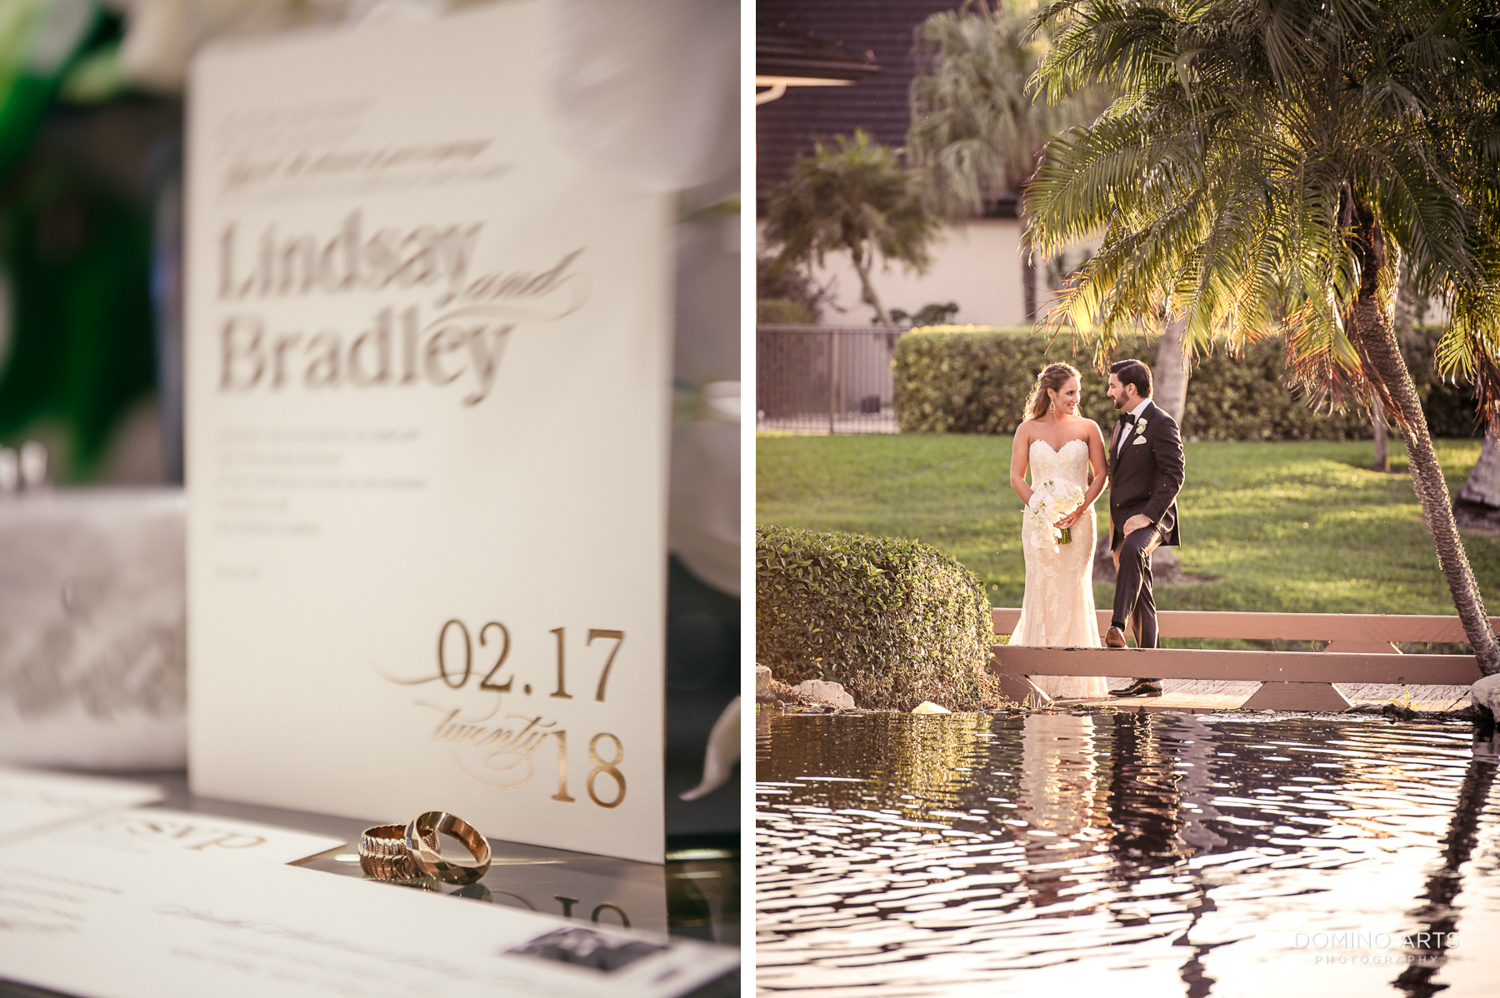 Wedding Invitation photographed by Domino Arts